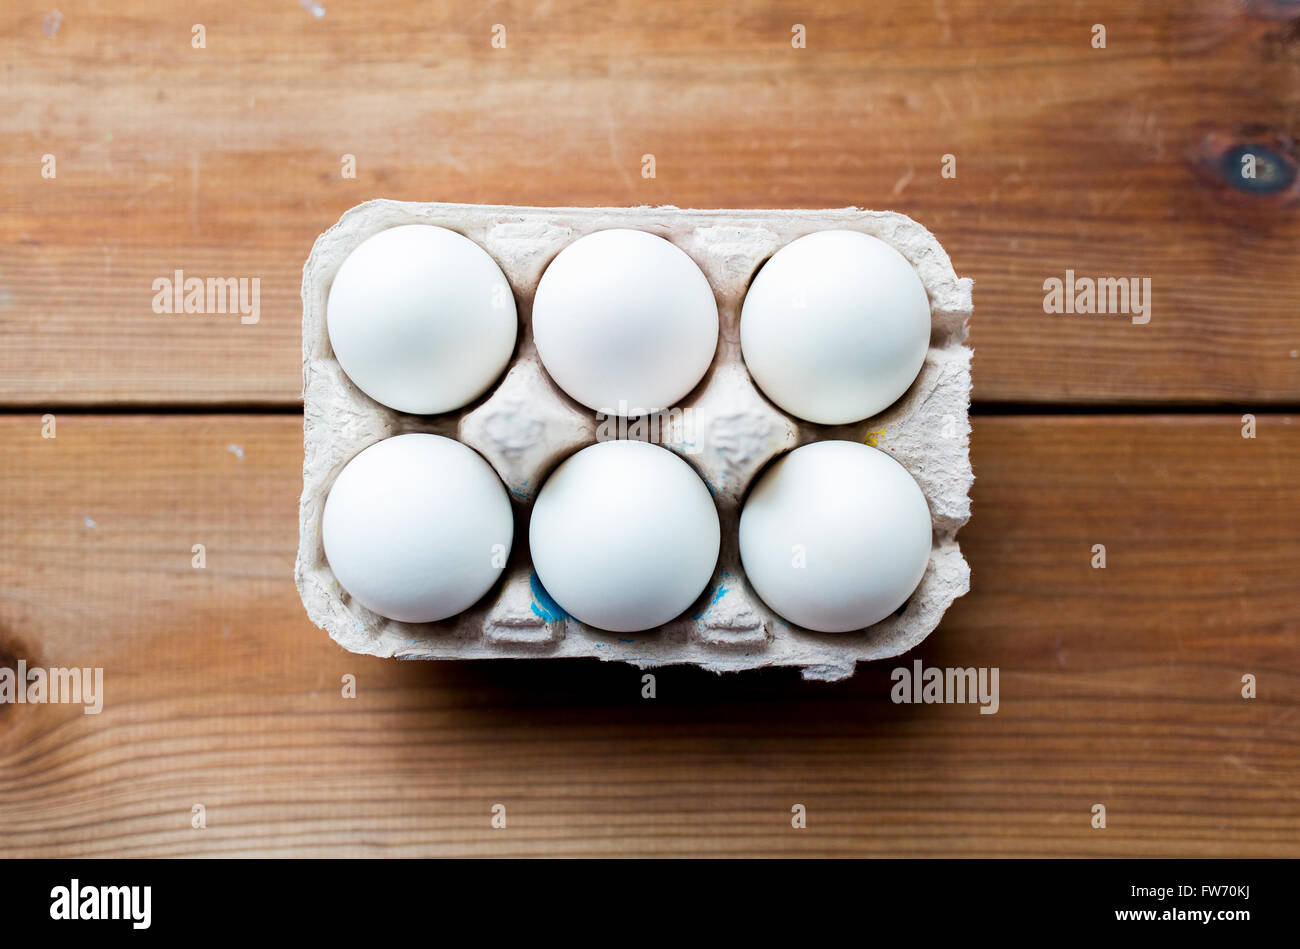 close up of white eggs in egg box or carton Stock Photo